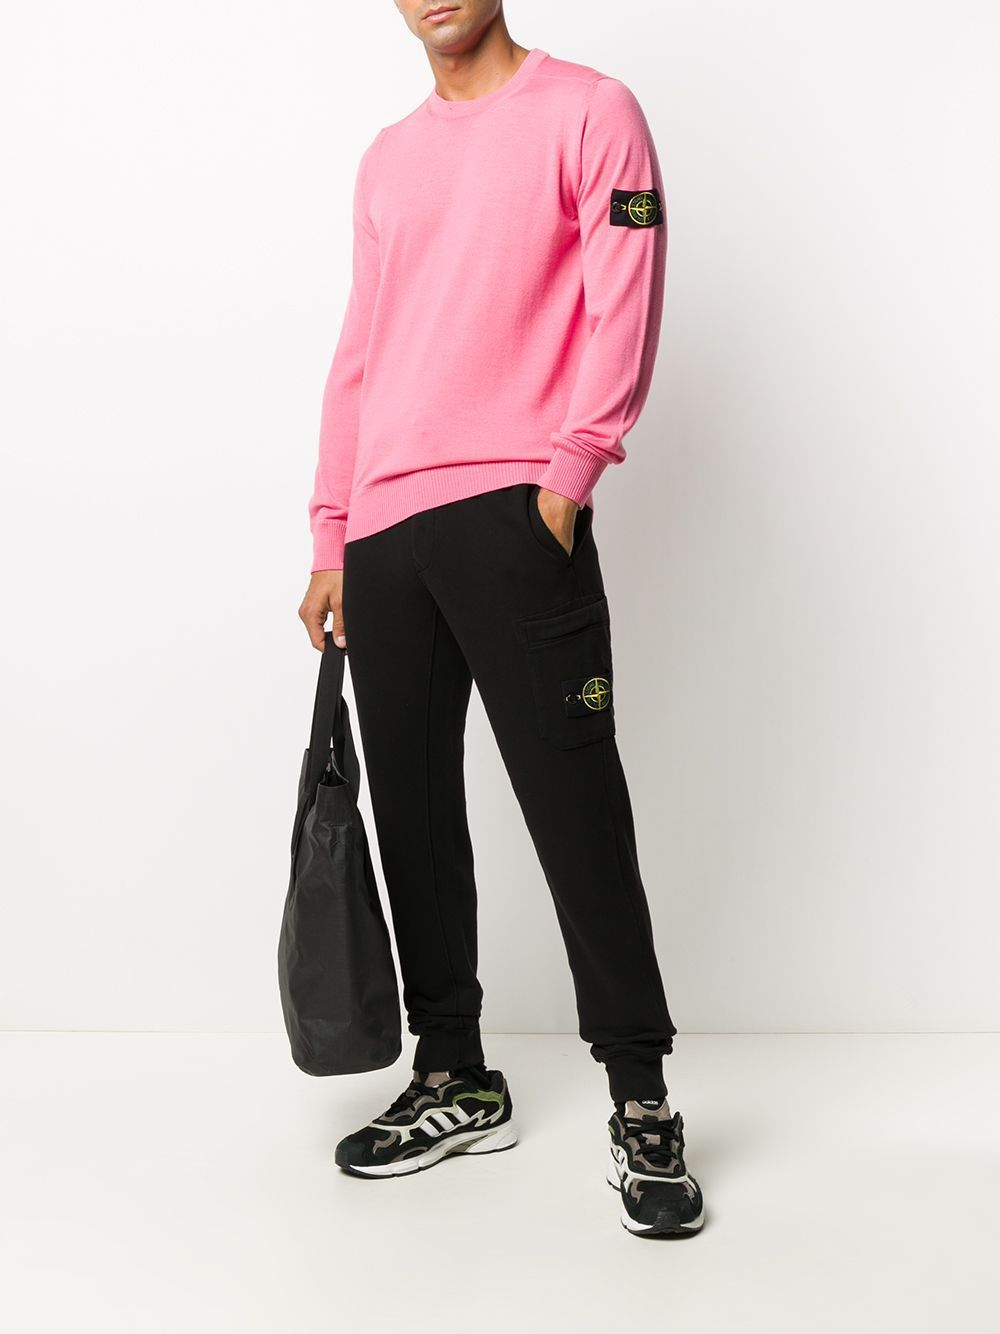 STONE ISLAND Fleece Sweatpants Black